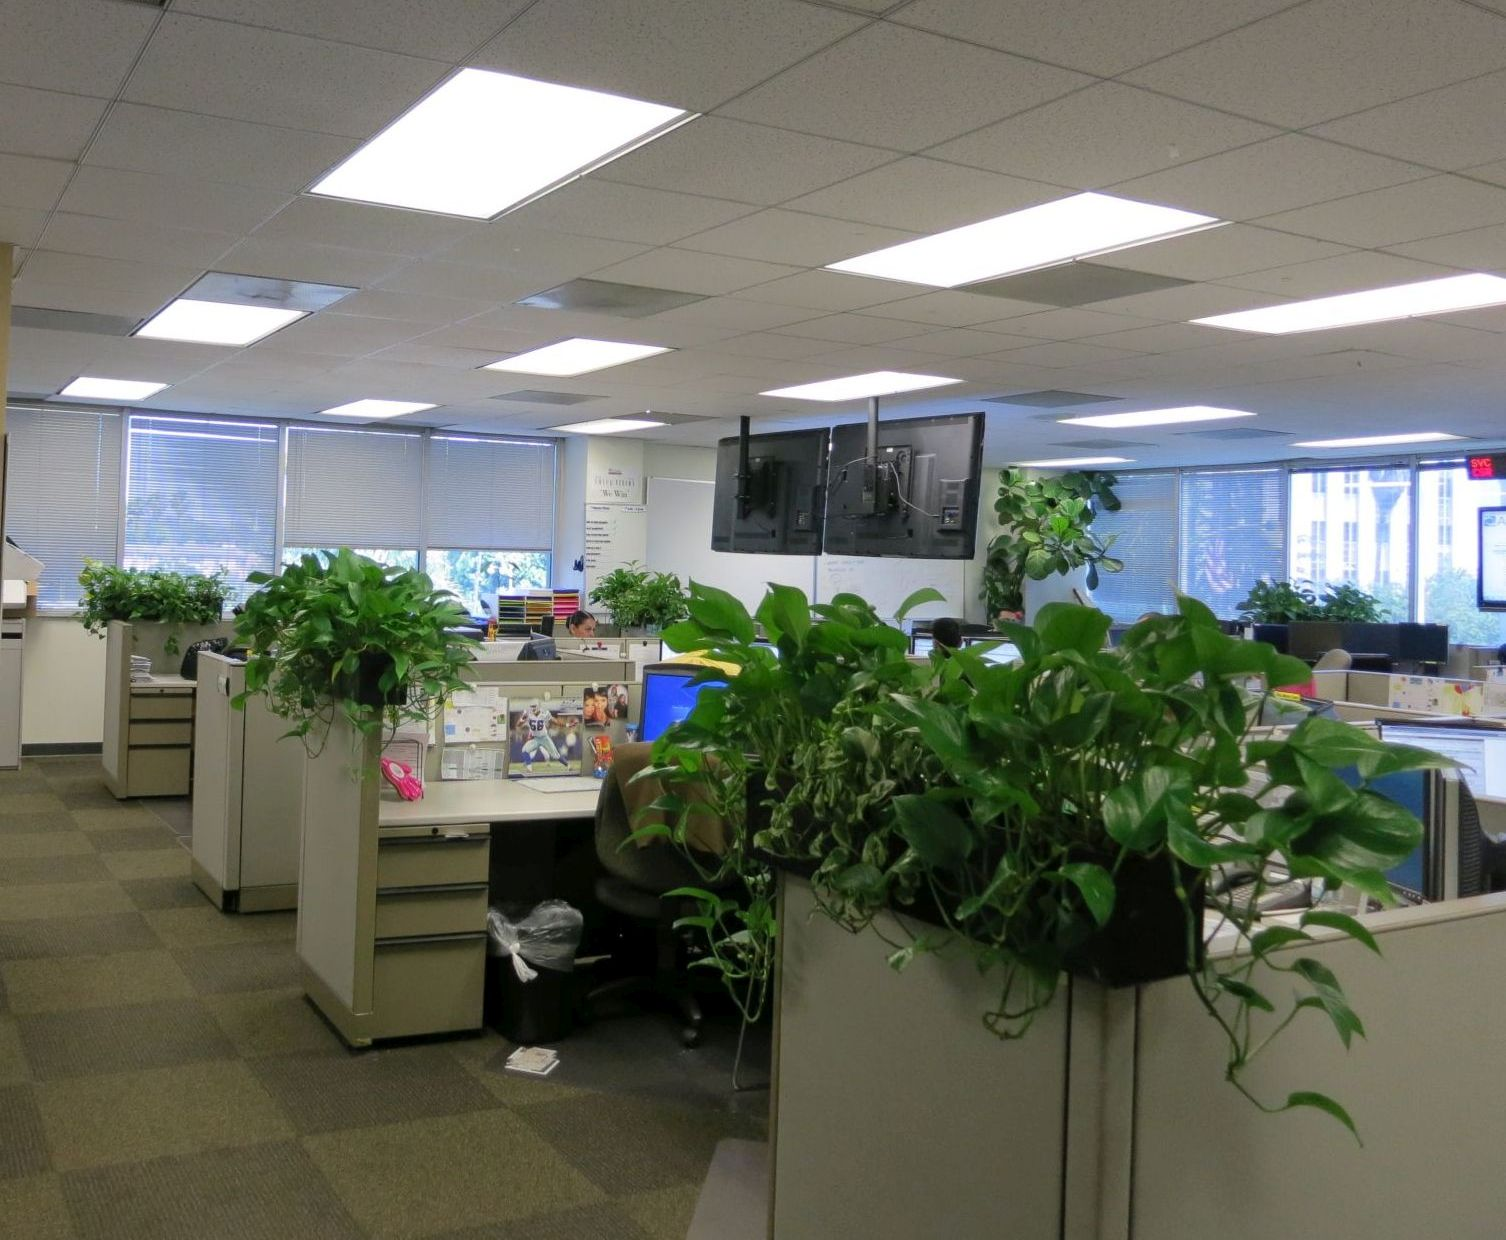 Interior Office Plant Design Beautification Thru Vegetation